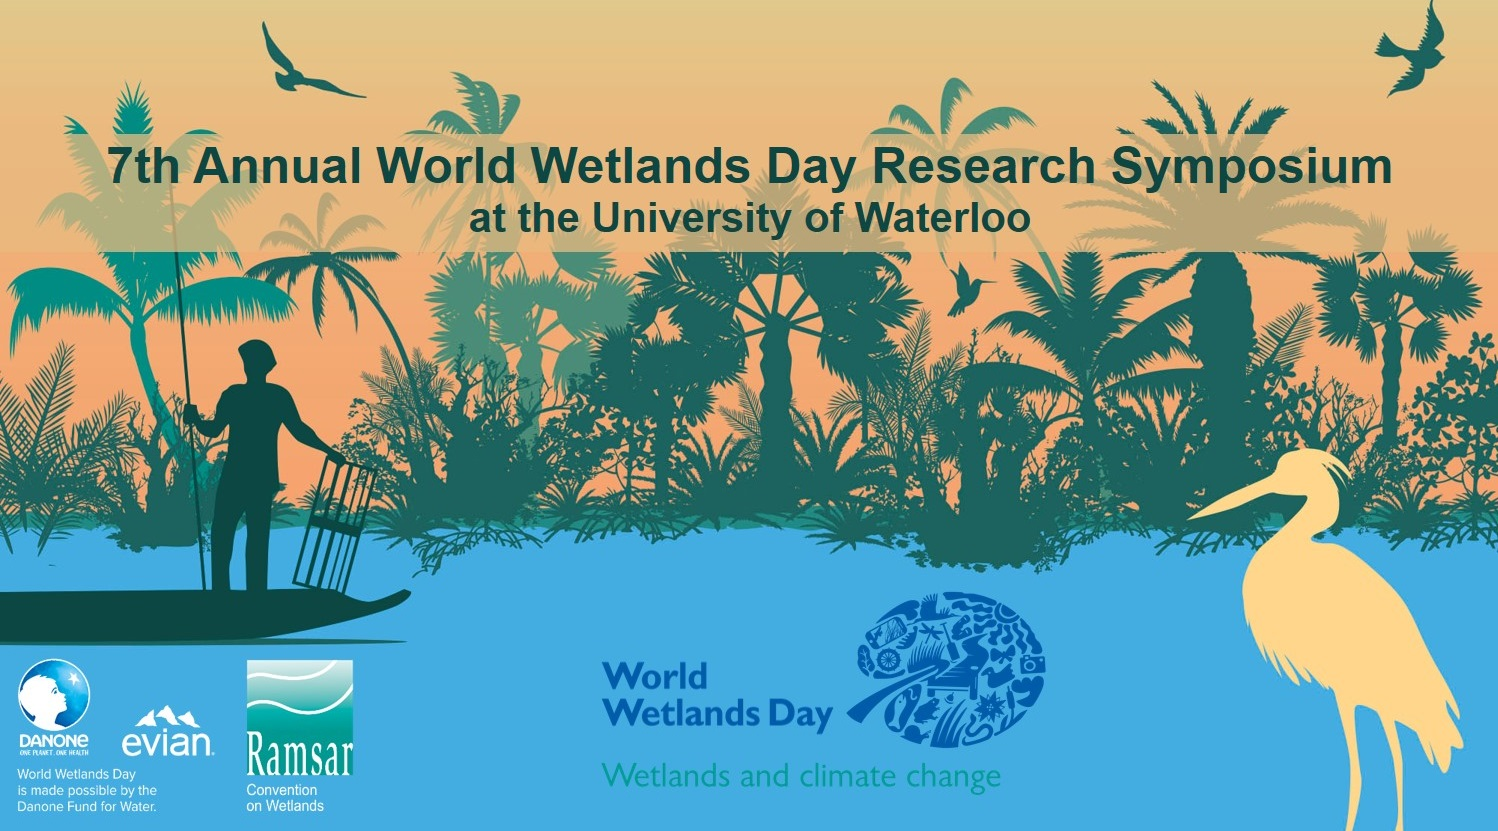 World Wetlands Day 2019 Poster